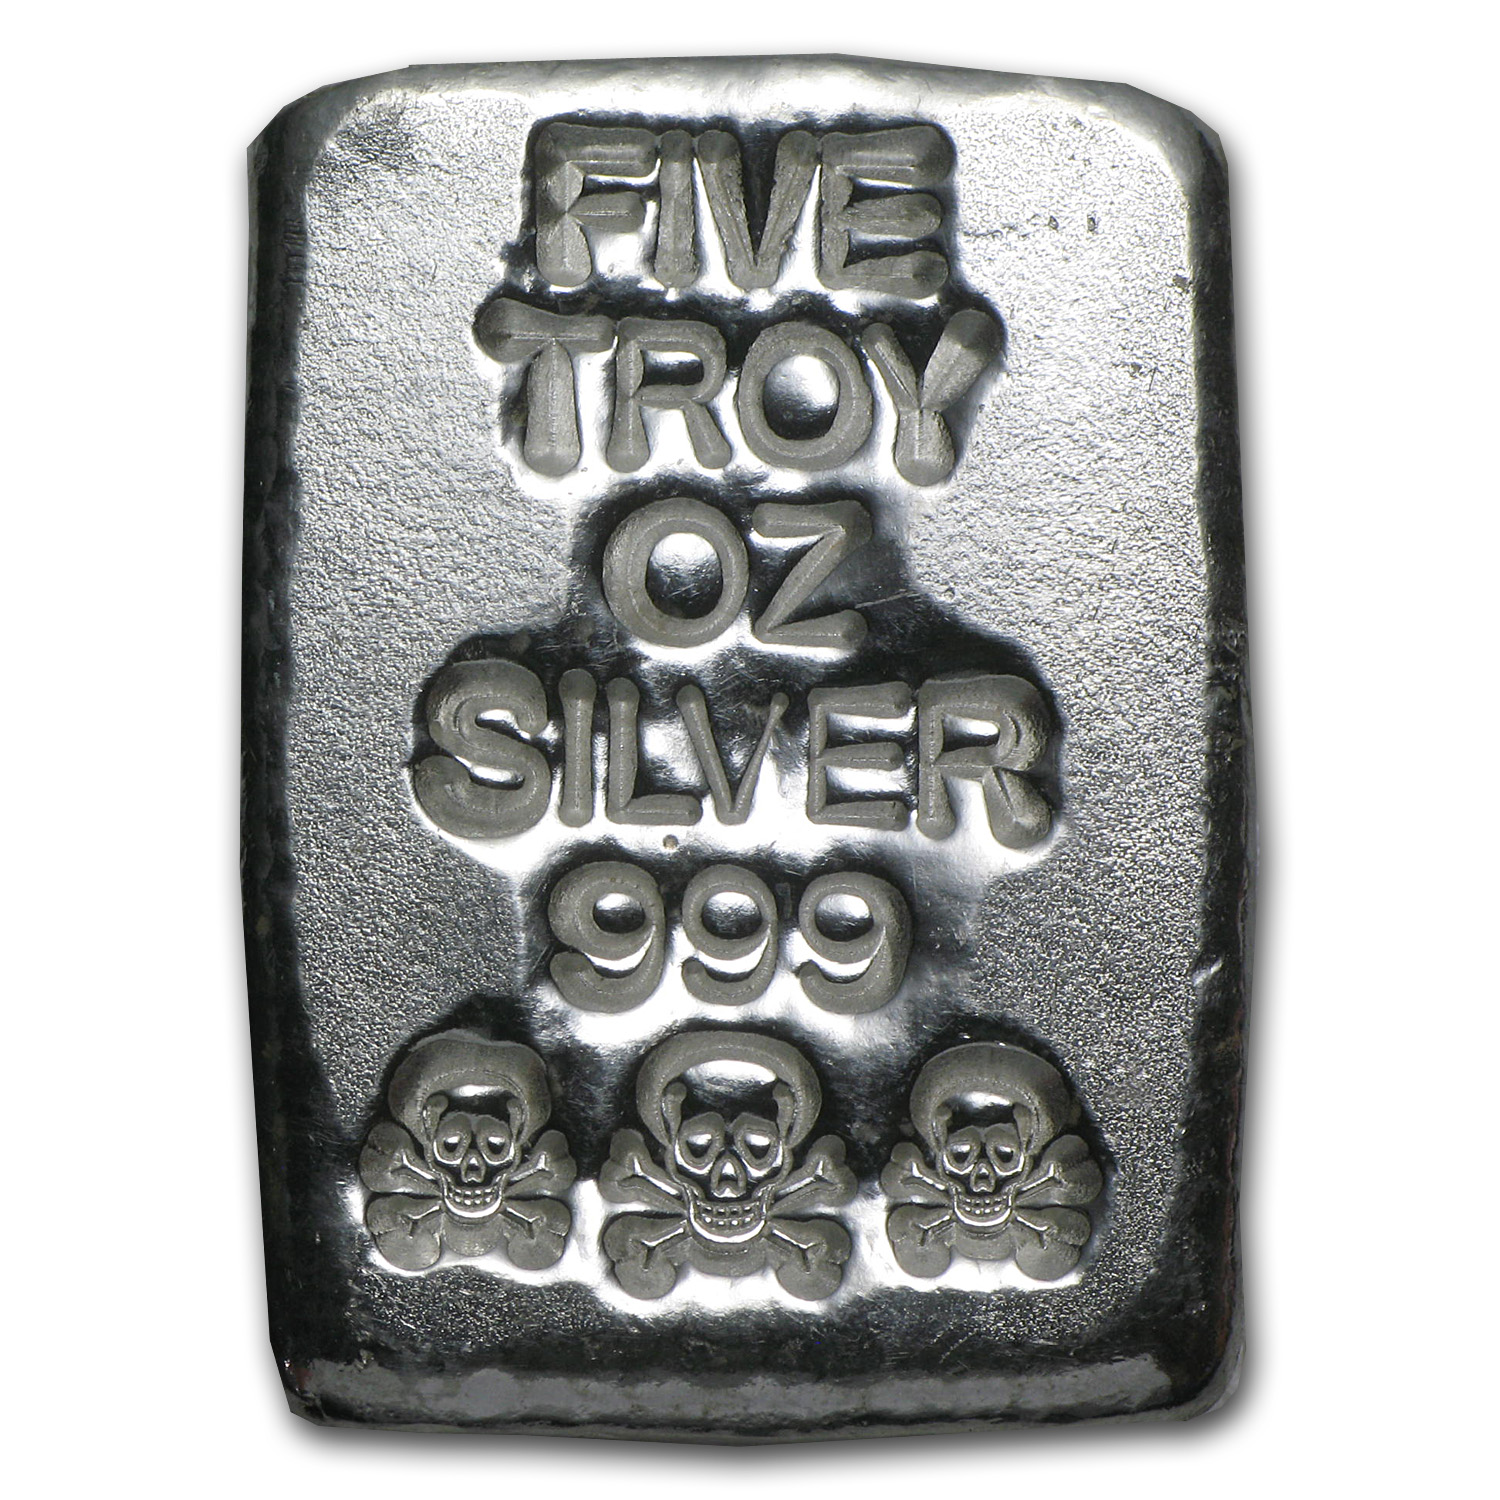 5 oz Silver Bar - Atlantis Mint (Skull & Bones)